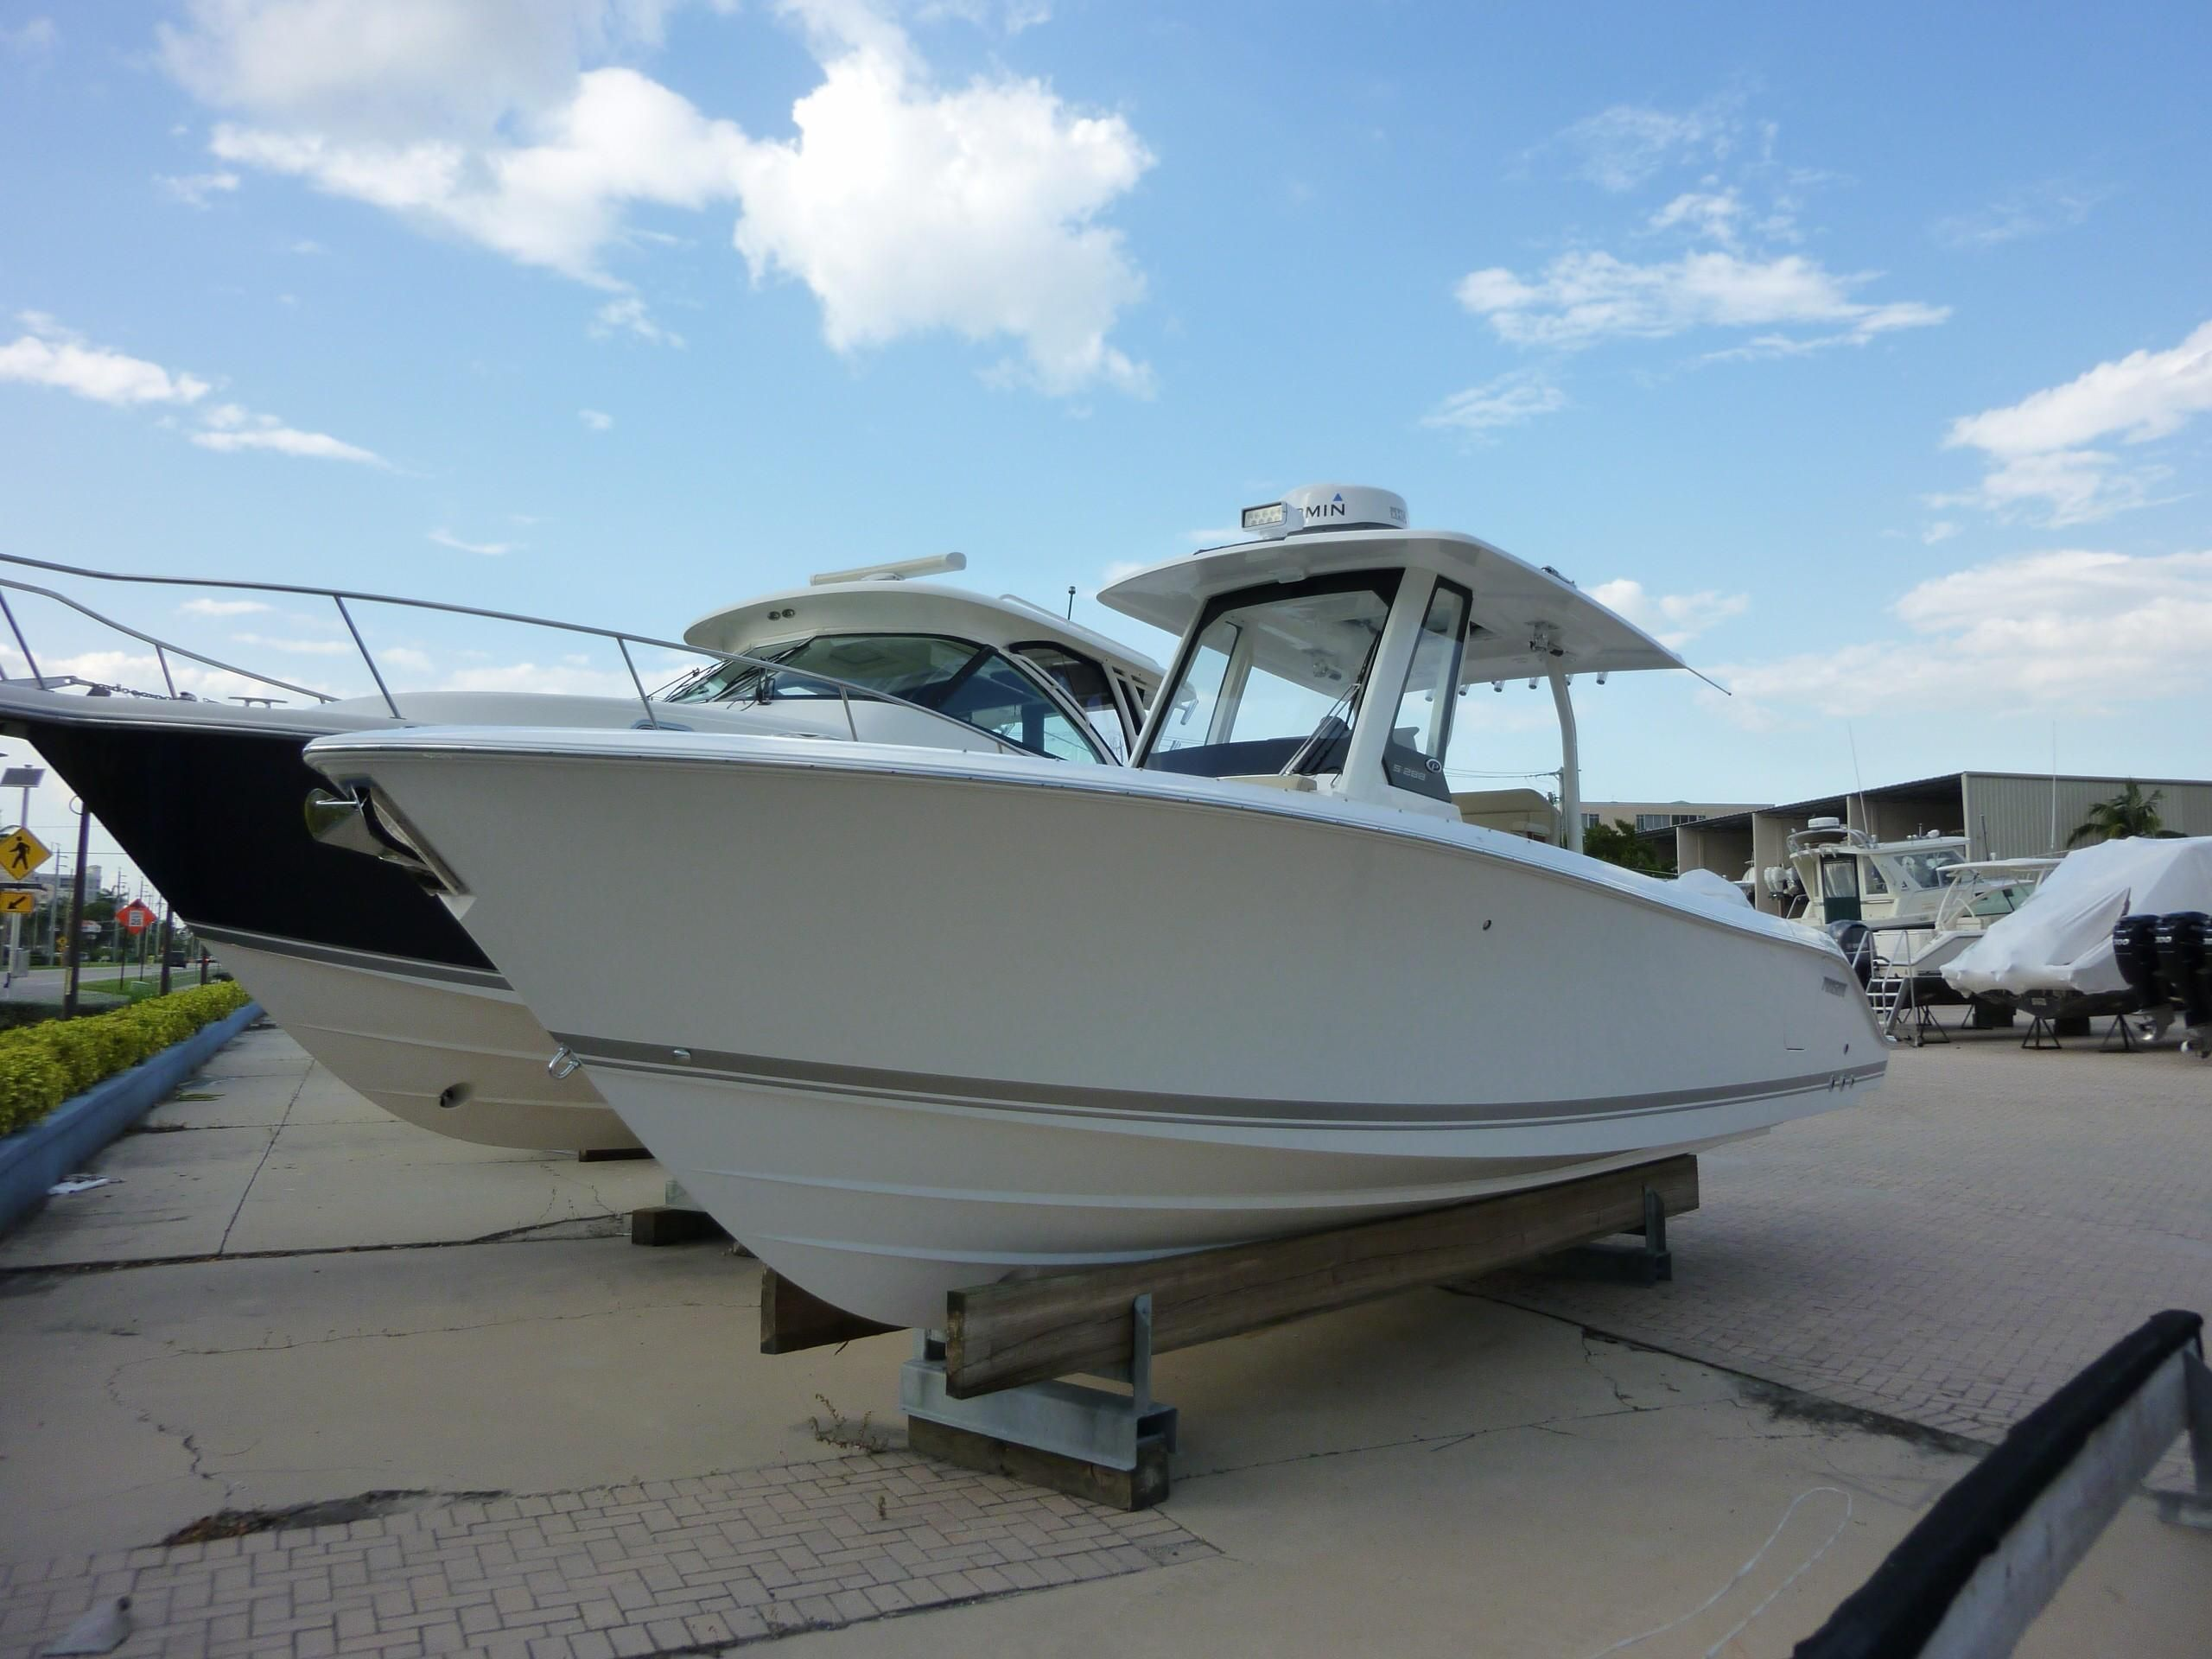 2019 Pursuit S288 Power New And Used Boats For Sale Yachtworld Details About Carling 5 Amp Single Switch Boat Circuit Breaker